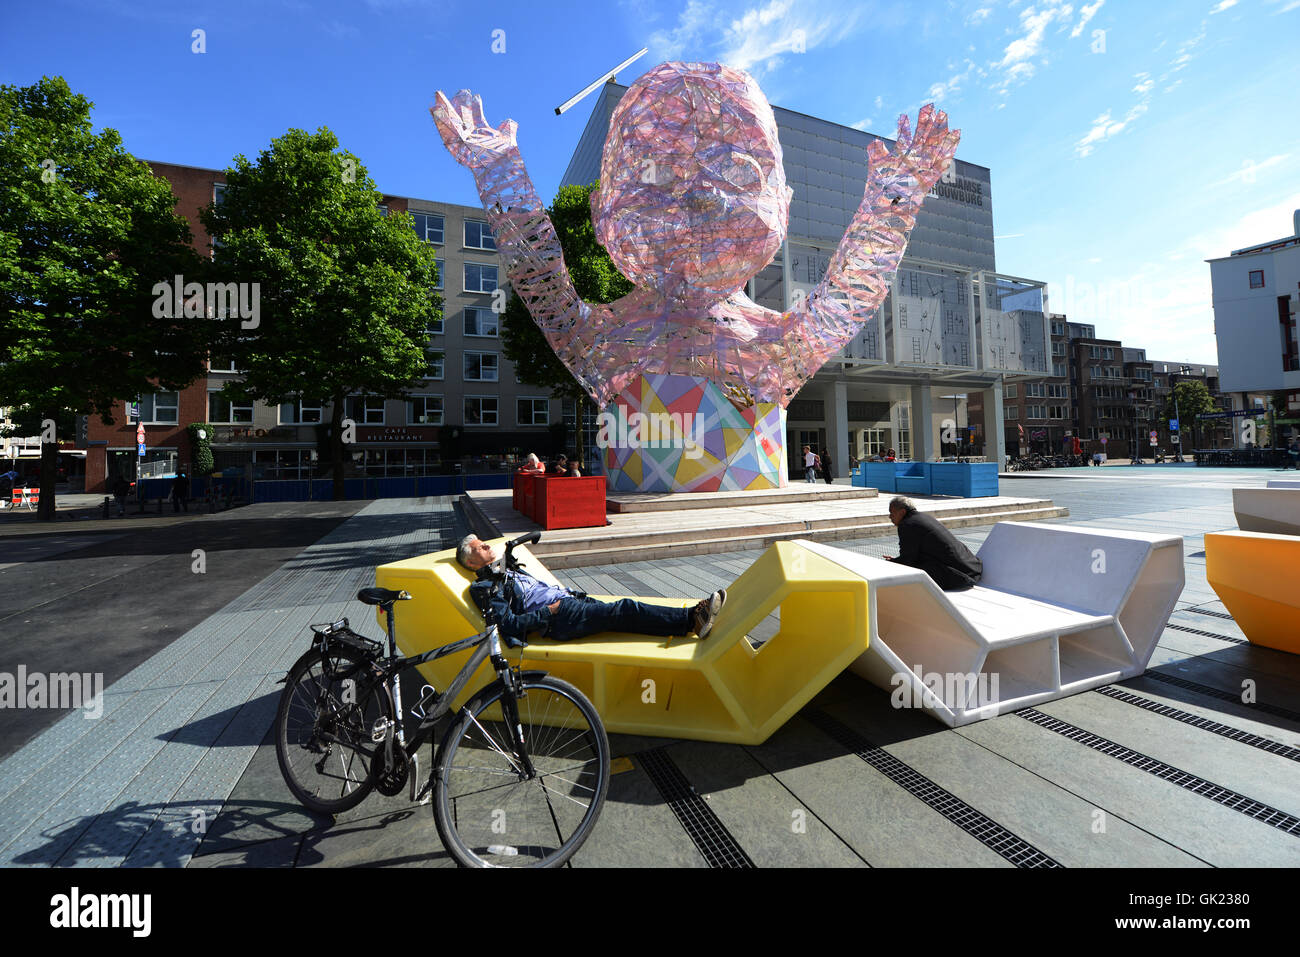 The colorful Schouwburgplein ( Theater square ) in Rotterdam. Stock Photo